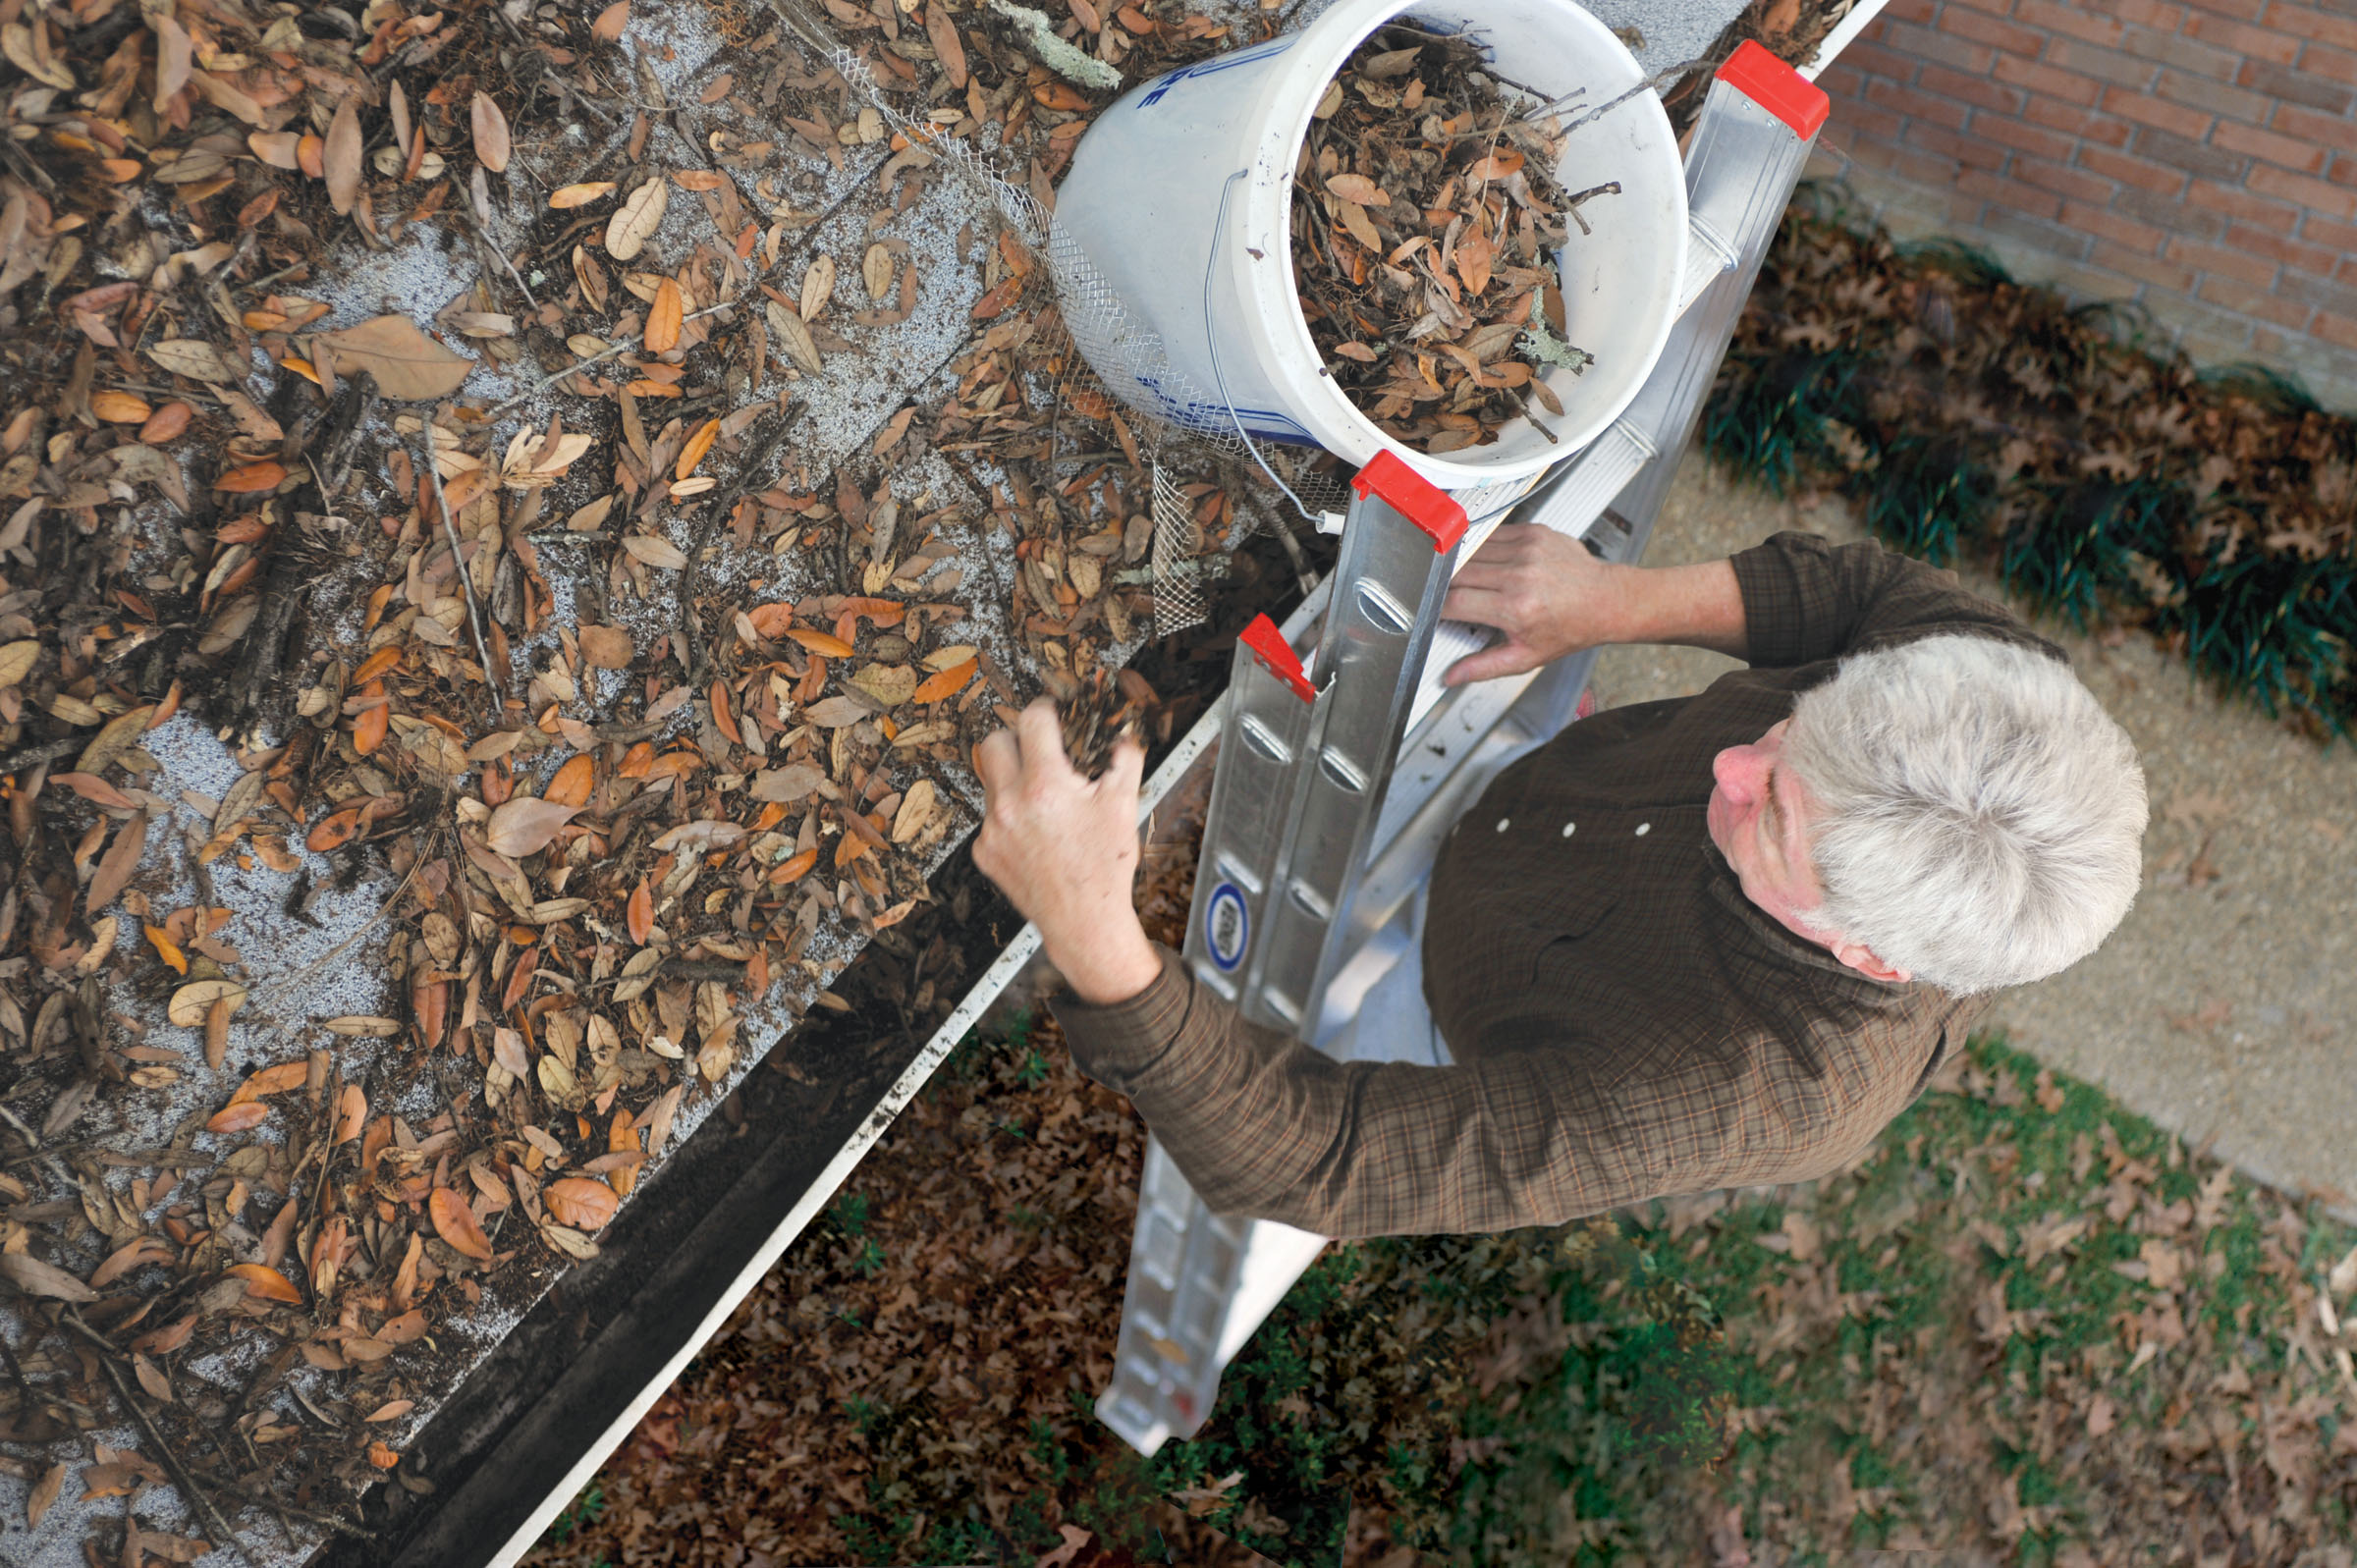 The Dangers of Cleaning Your Gutters and Why You Should Hire a Professional